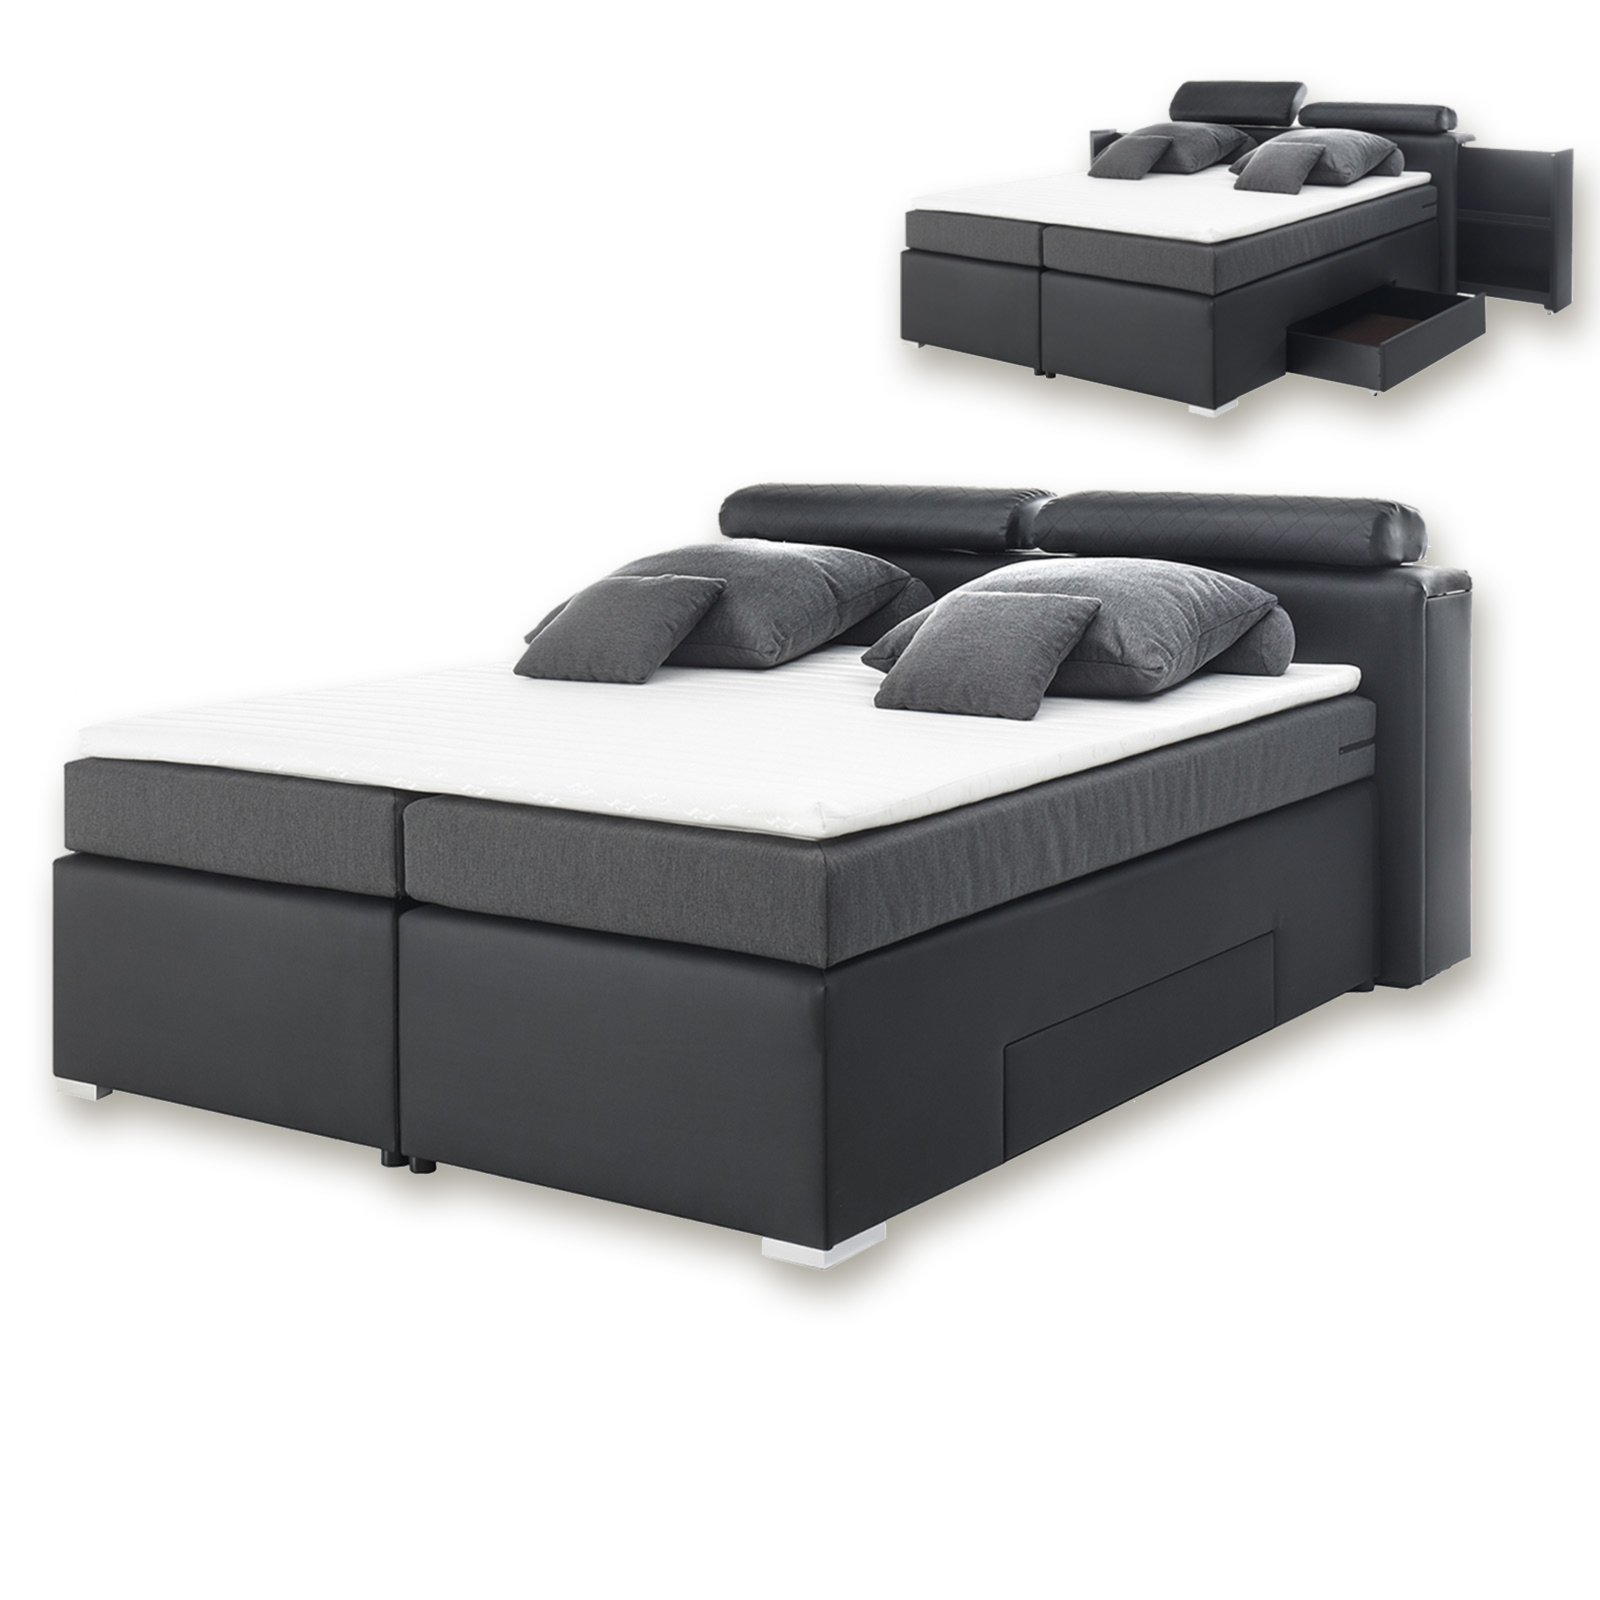 boxspringbett armando h2 schwarz anthrazit 180x200 cm boxspringbetten betten m bel. Black Bedroom Furniture Sets. Home Design Ideas